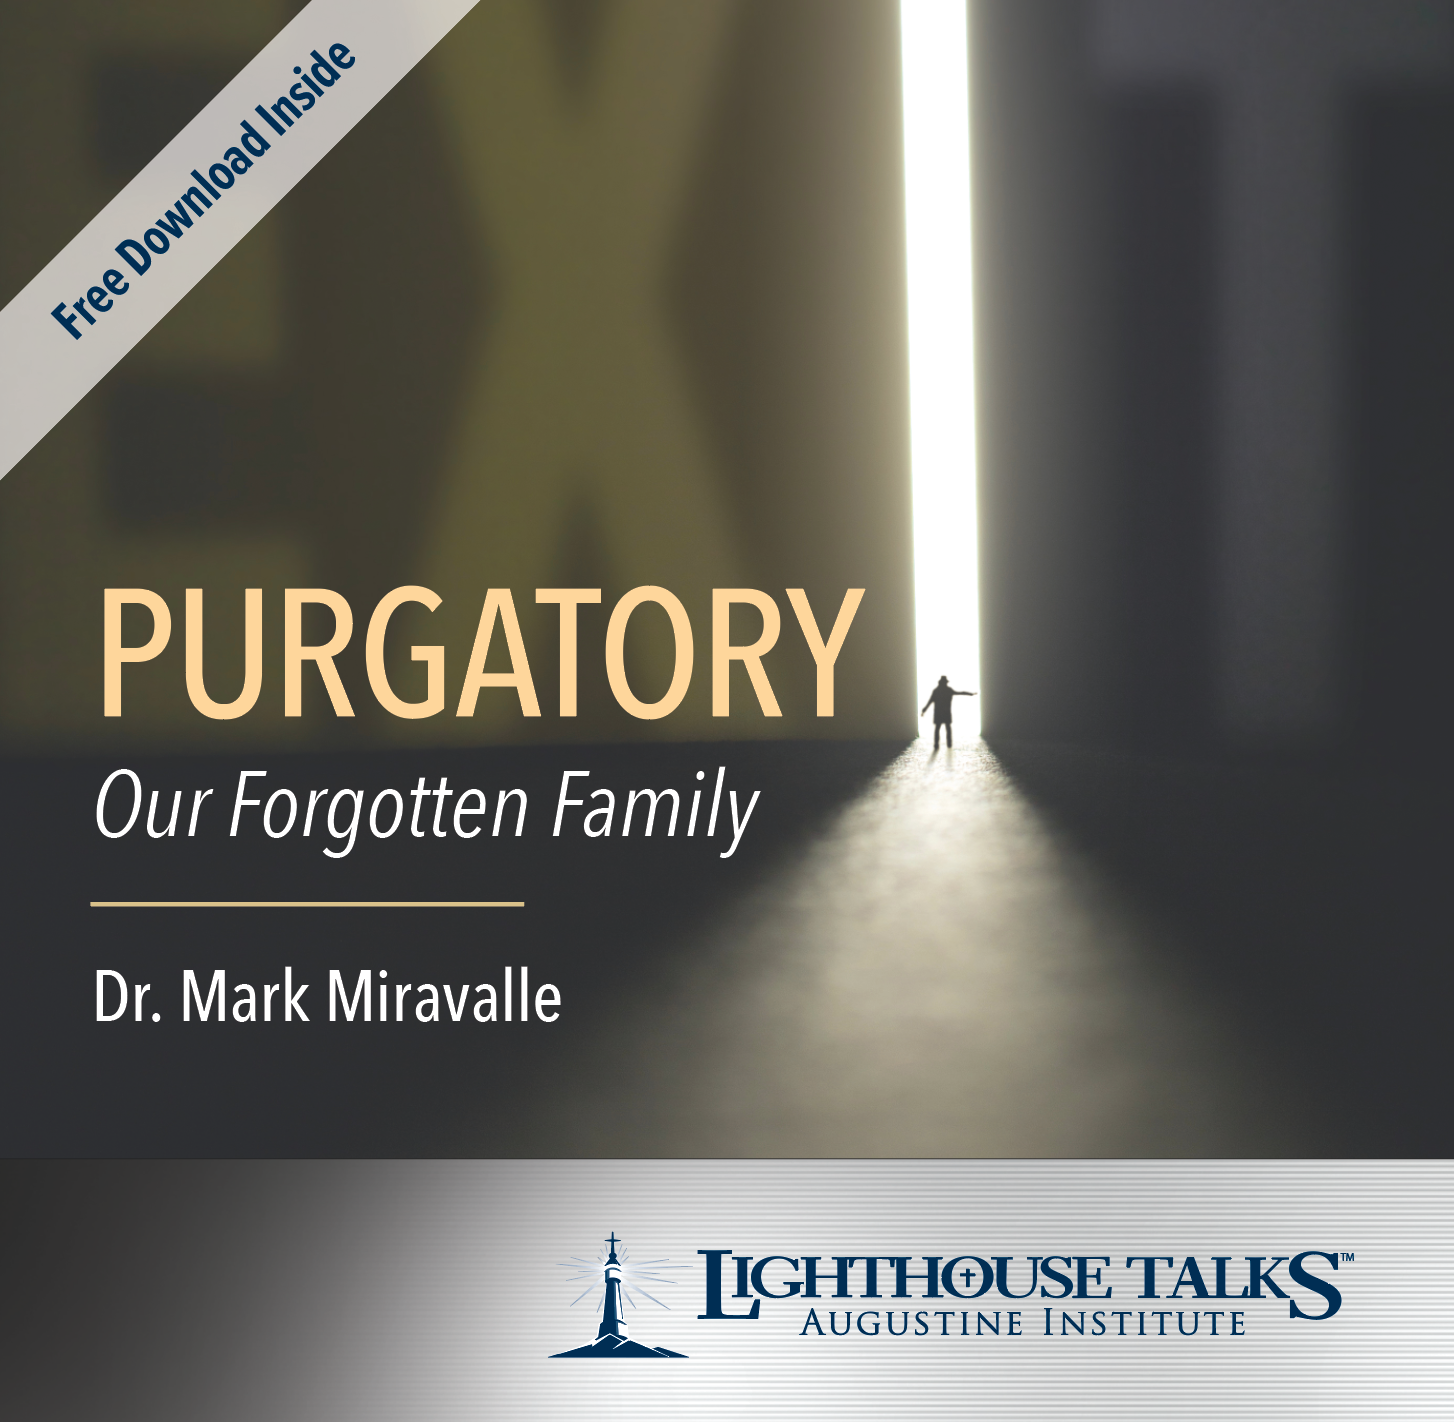 Purgatory: Our Forgotten Family